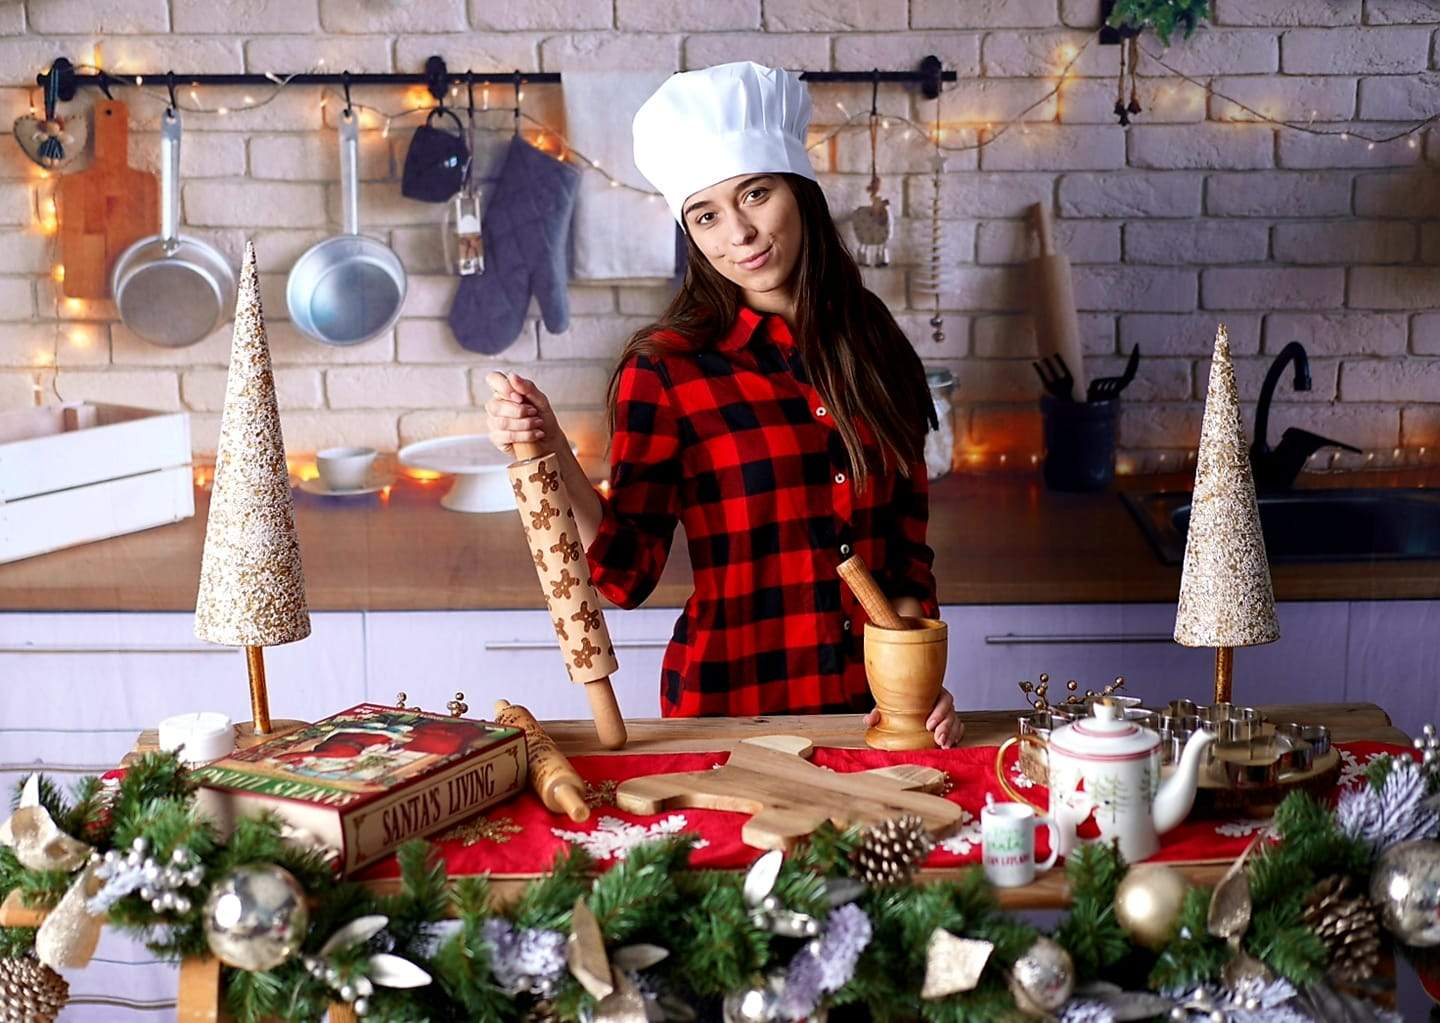 Load image into Gallery viewer, Kate White Brick Wall Christmas Kitchen  Backdrop Designed By Jerry_Sina